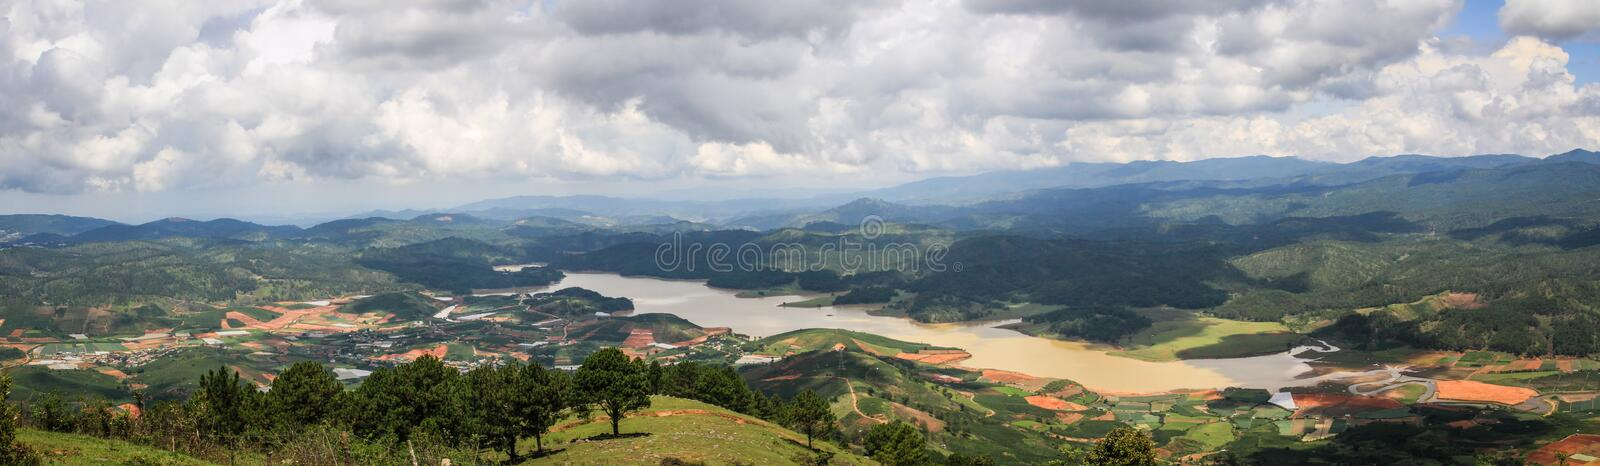 Panorama on the surrounding countryside from the Lang Biang Mountain, Lam Province, Vietnam. Lang Biang consists of the two highest peaks of Lam Vien Highland stock images